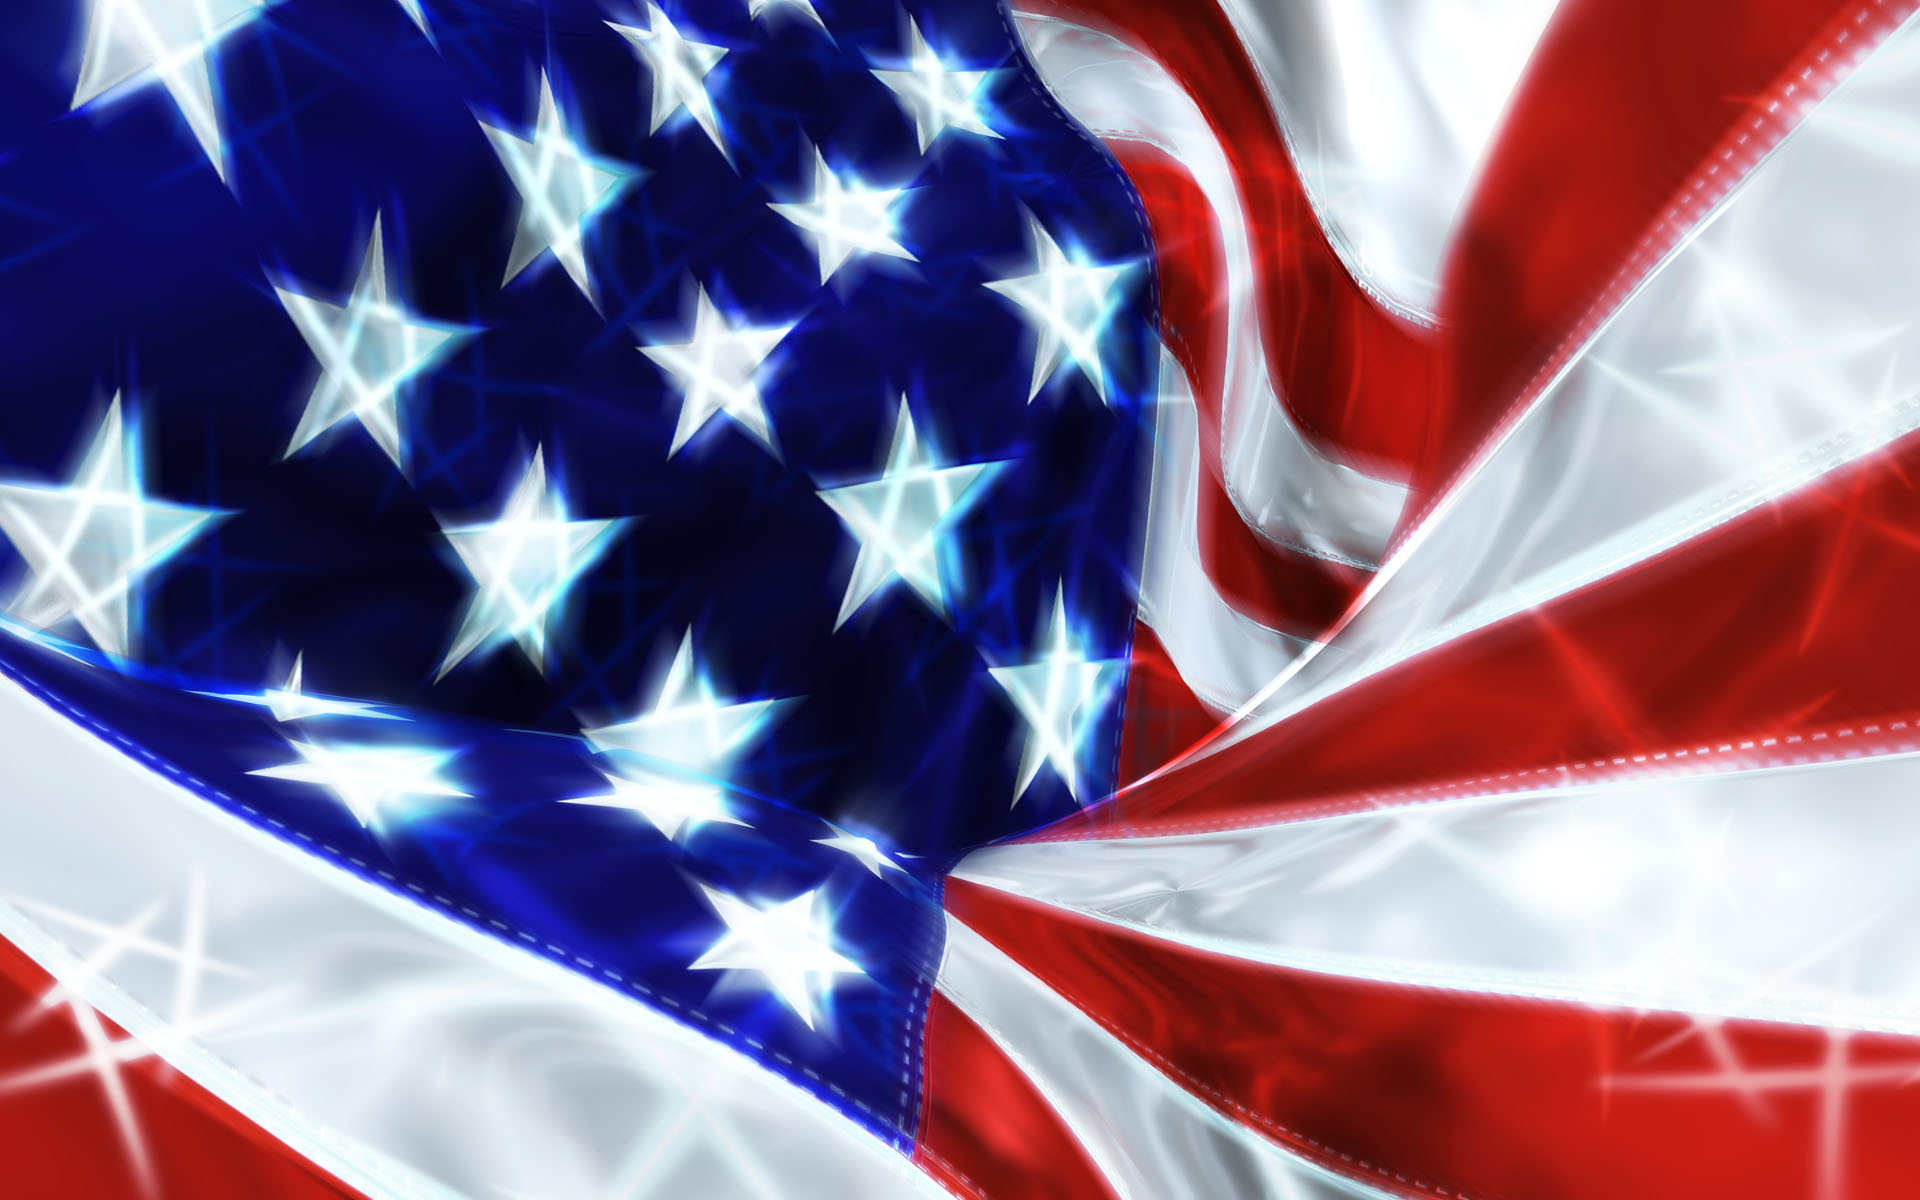 rate select rating give united states flag 1 5 give united states 1920x1200